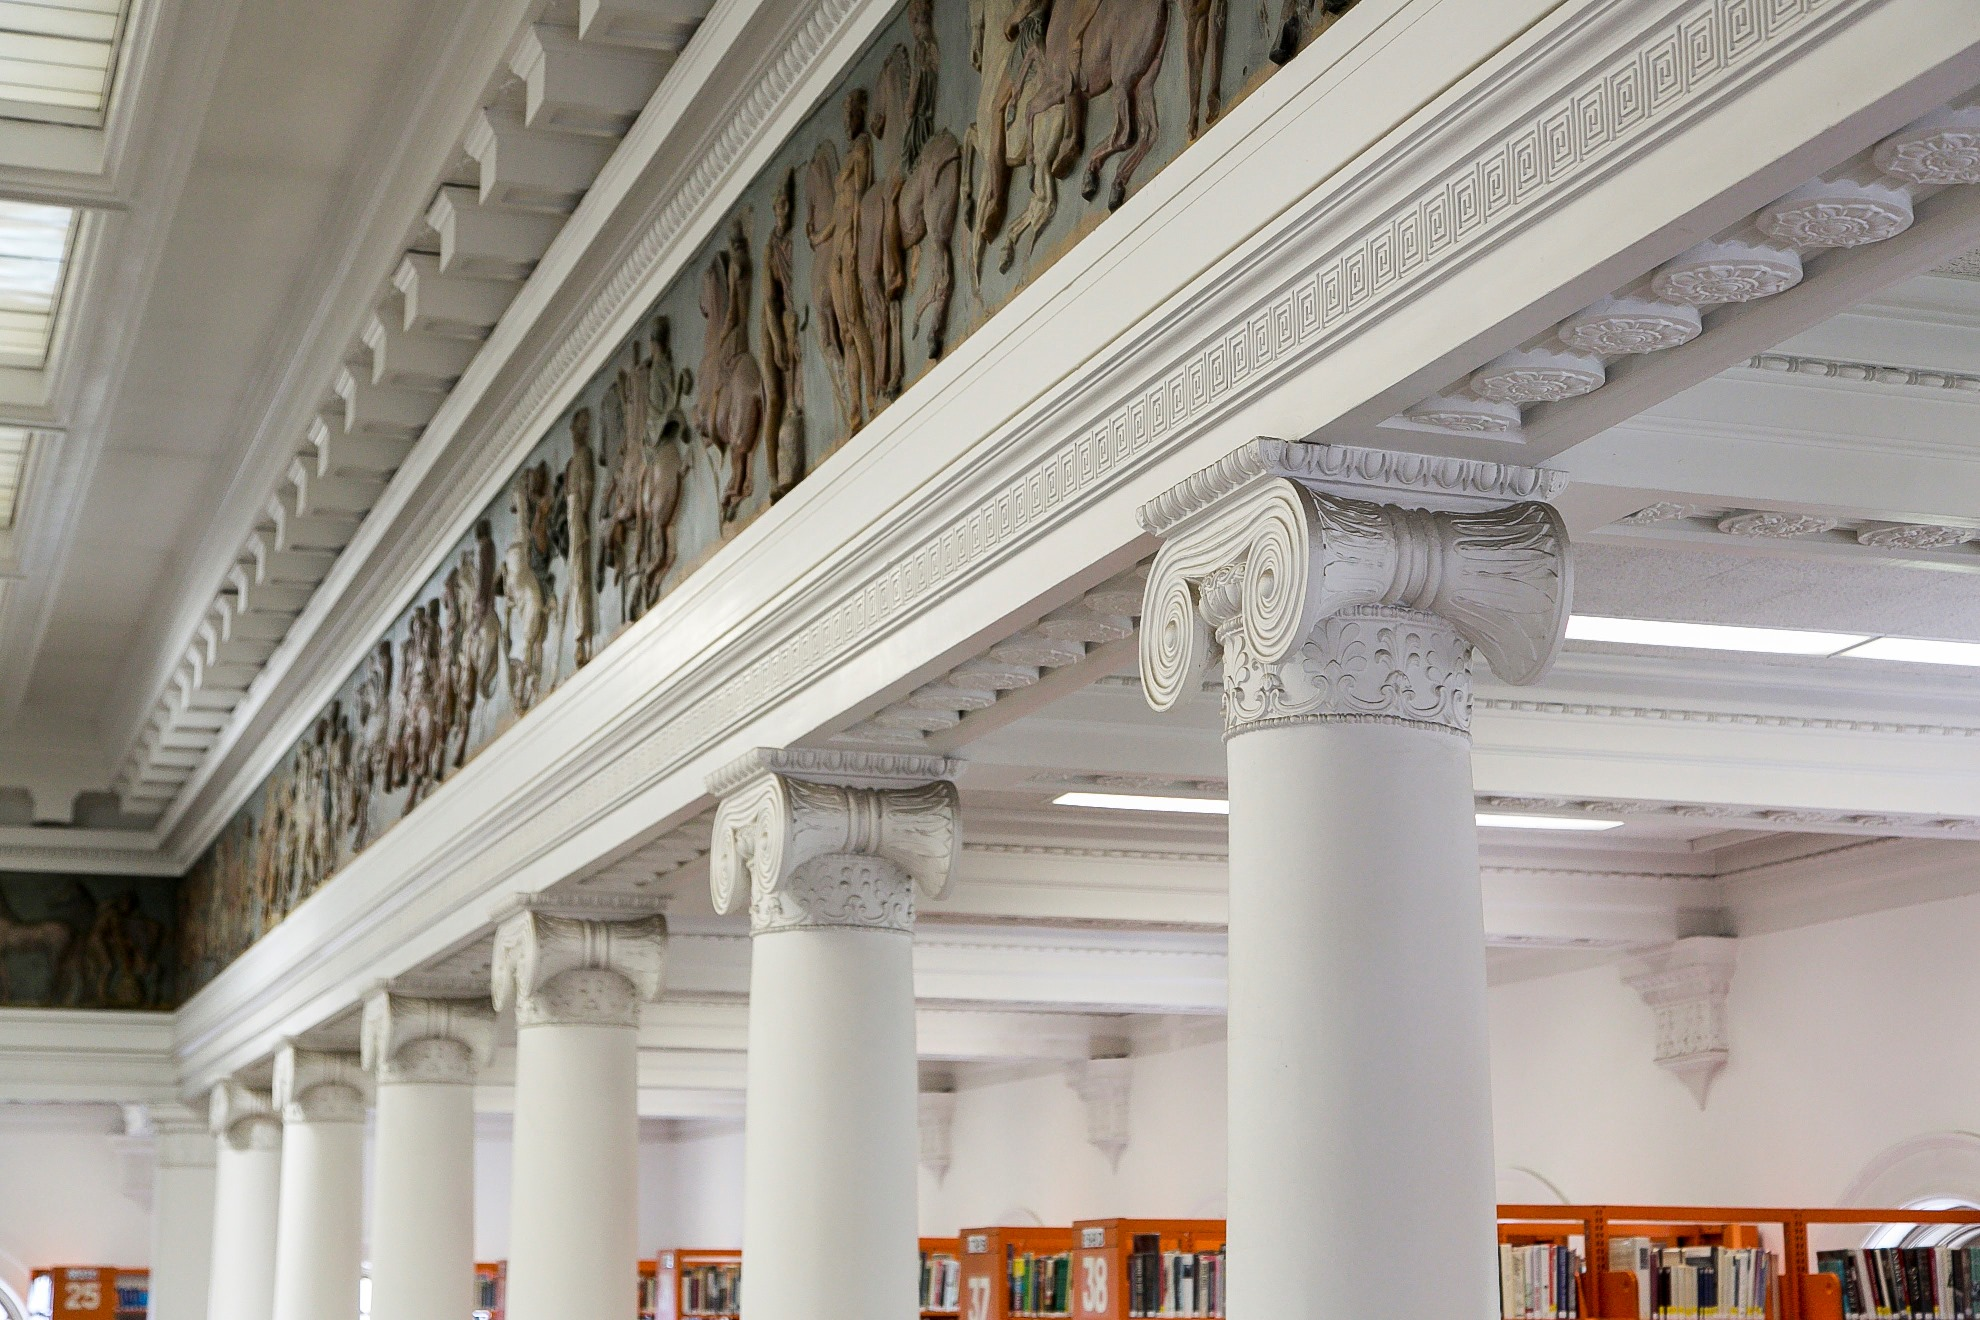 Image depicting the columns in the Central library reading room.